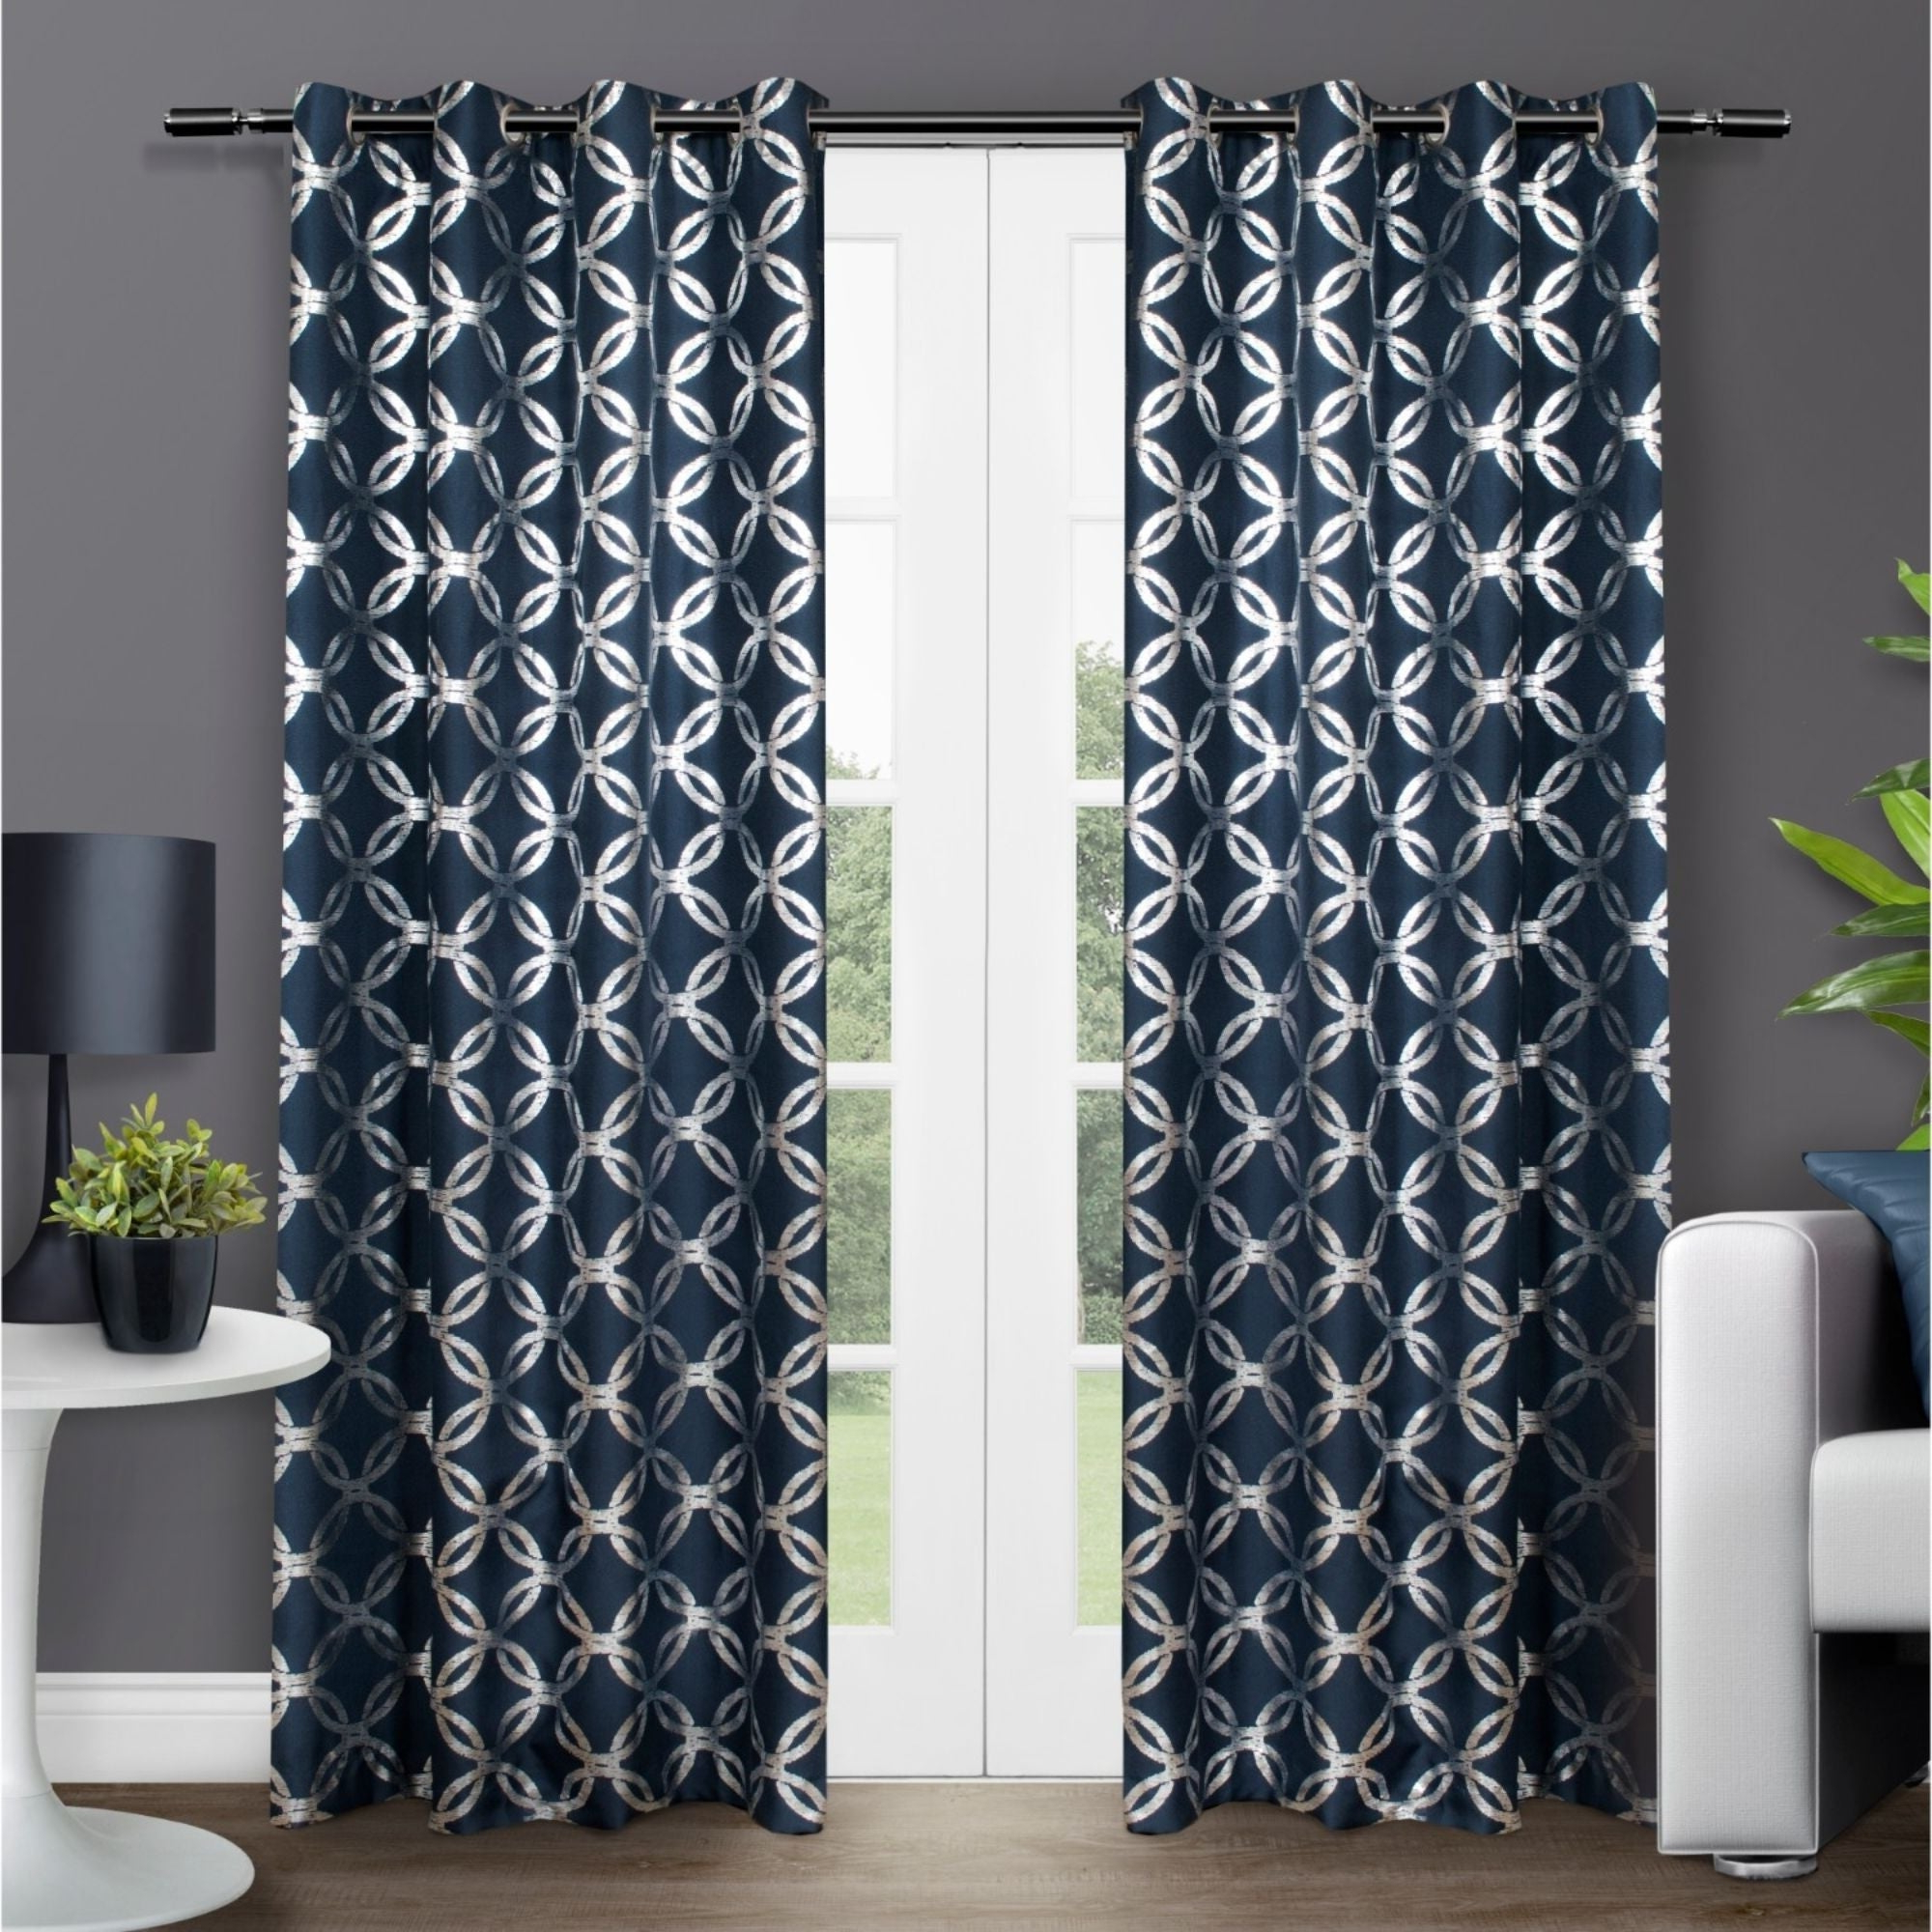 The Curated Nomad Duane Jacquard Grommet Top Curtain Panel Pairs Regarding Widely Used The Curated Nomad Sloat Metallic Geometric Grommet Top Curtain Panel Pair (View 10 of 21)